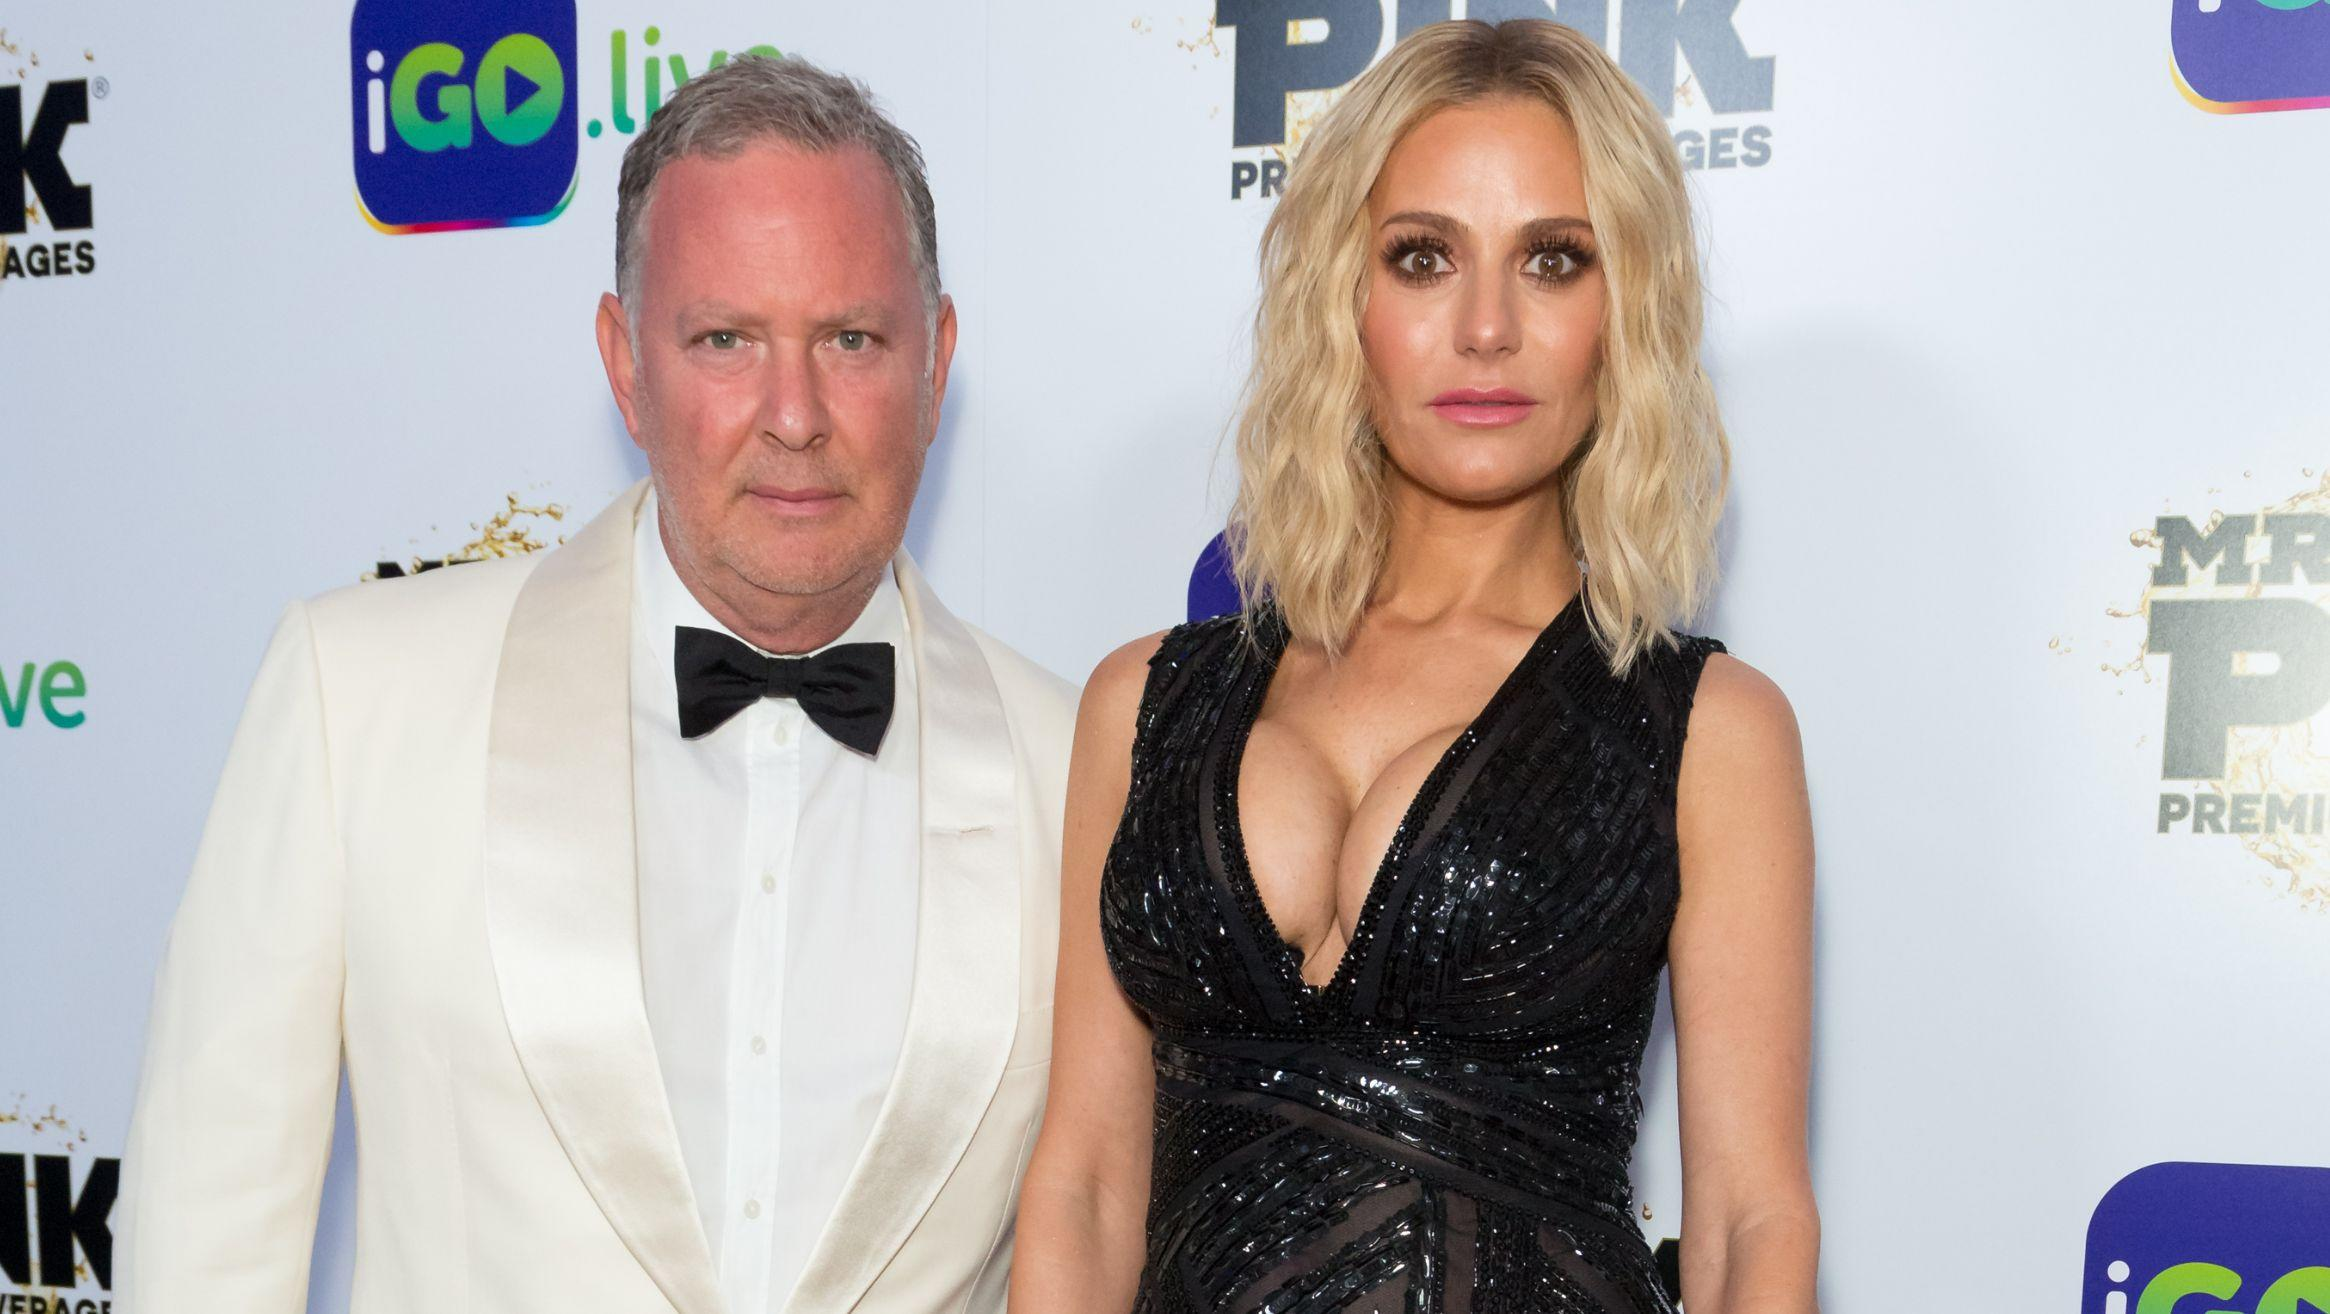 RHOBH' Star Dorit Kemsley's Husband Tries To Block Her From